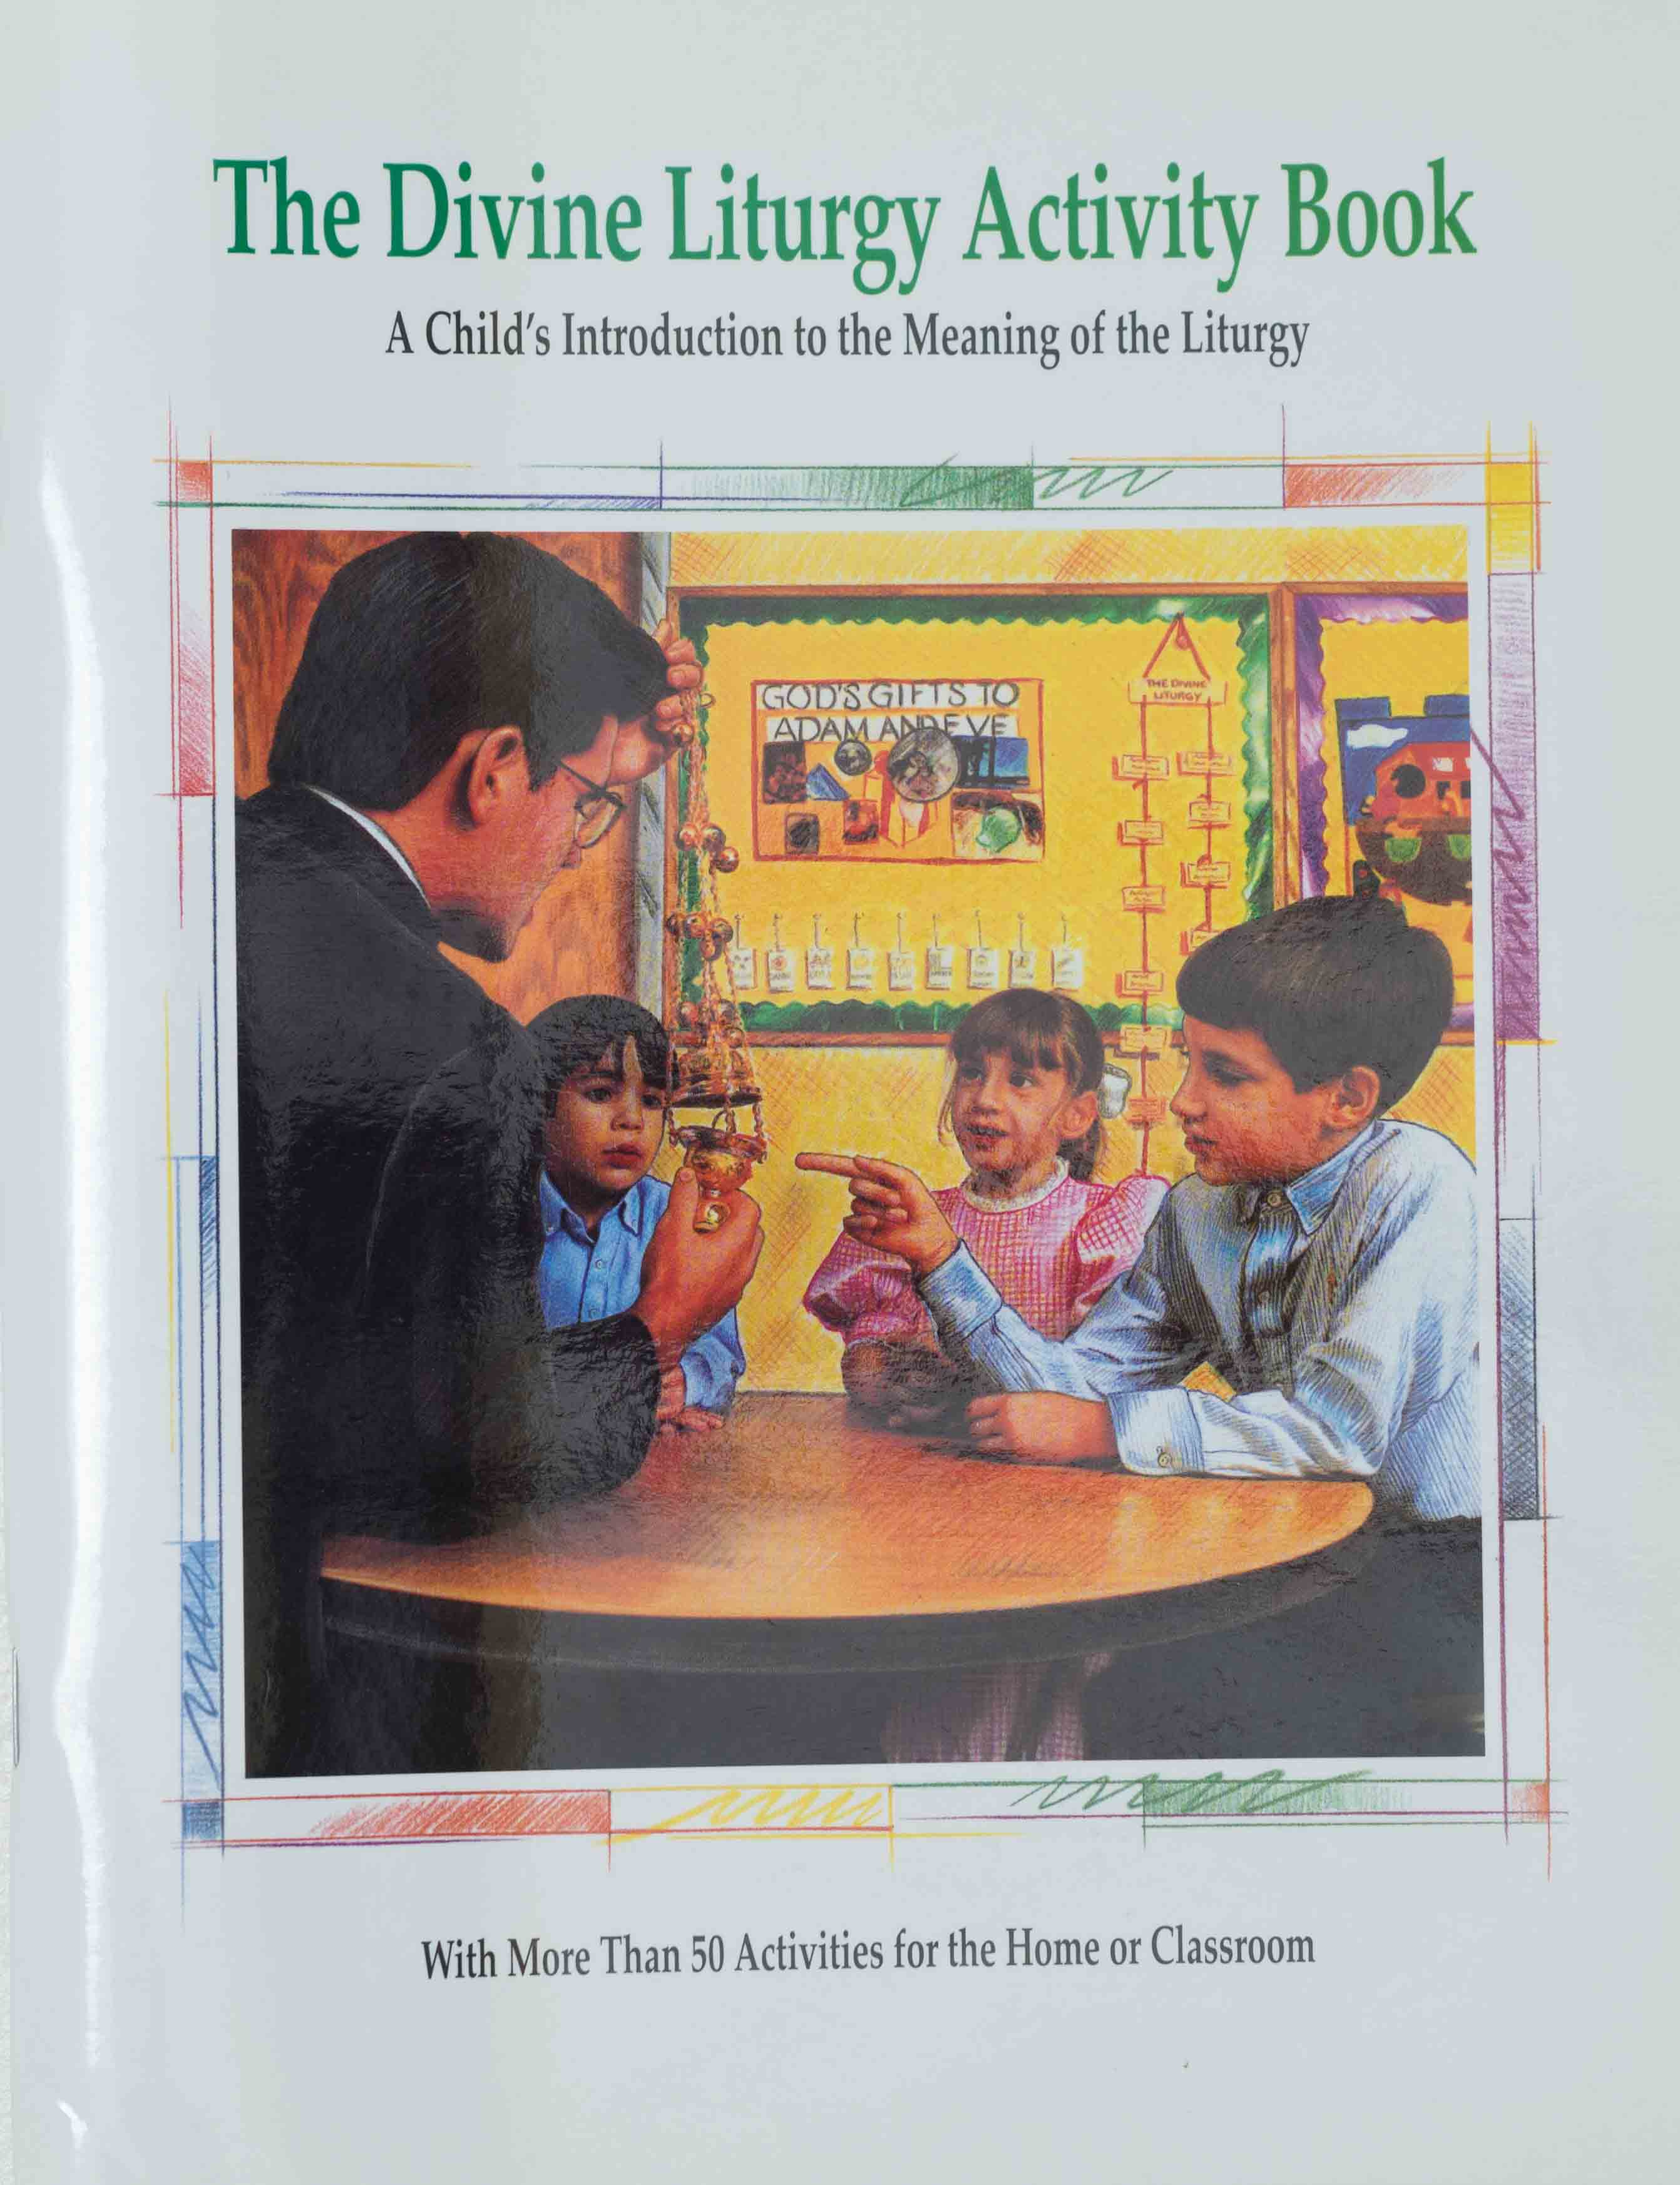 The Divine Liturgy Activity Book: A Child's Introduction to the Meaning of the Liturgy